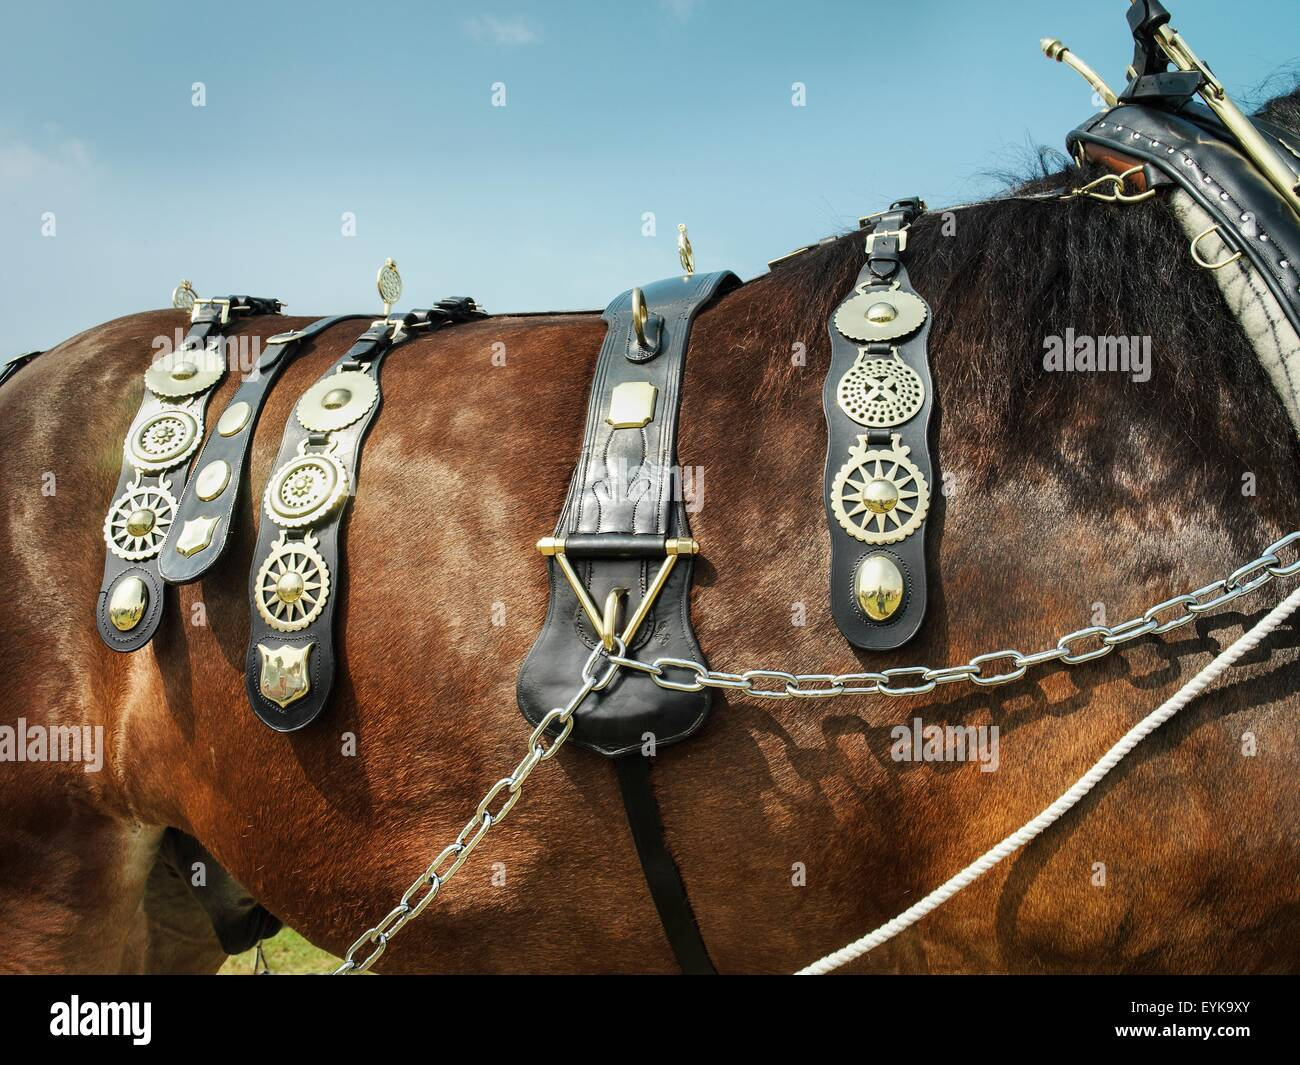 Horse Brass High Resolution Stock Photography And Images Alamy